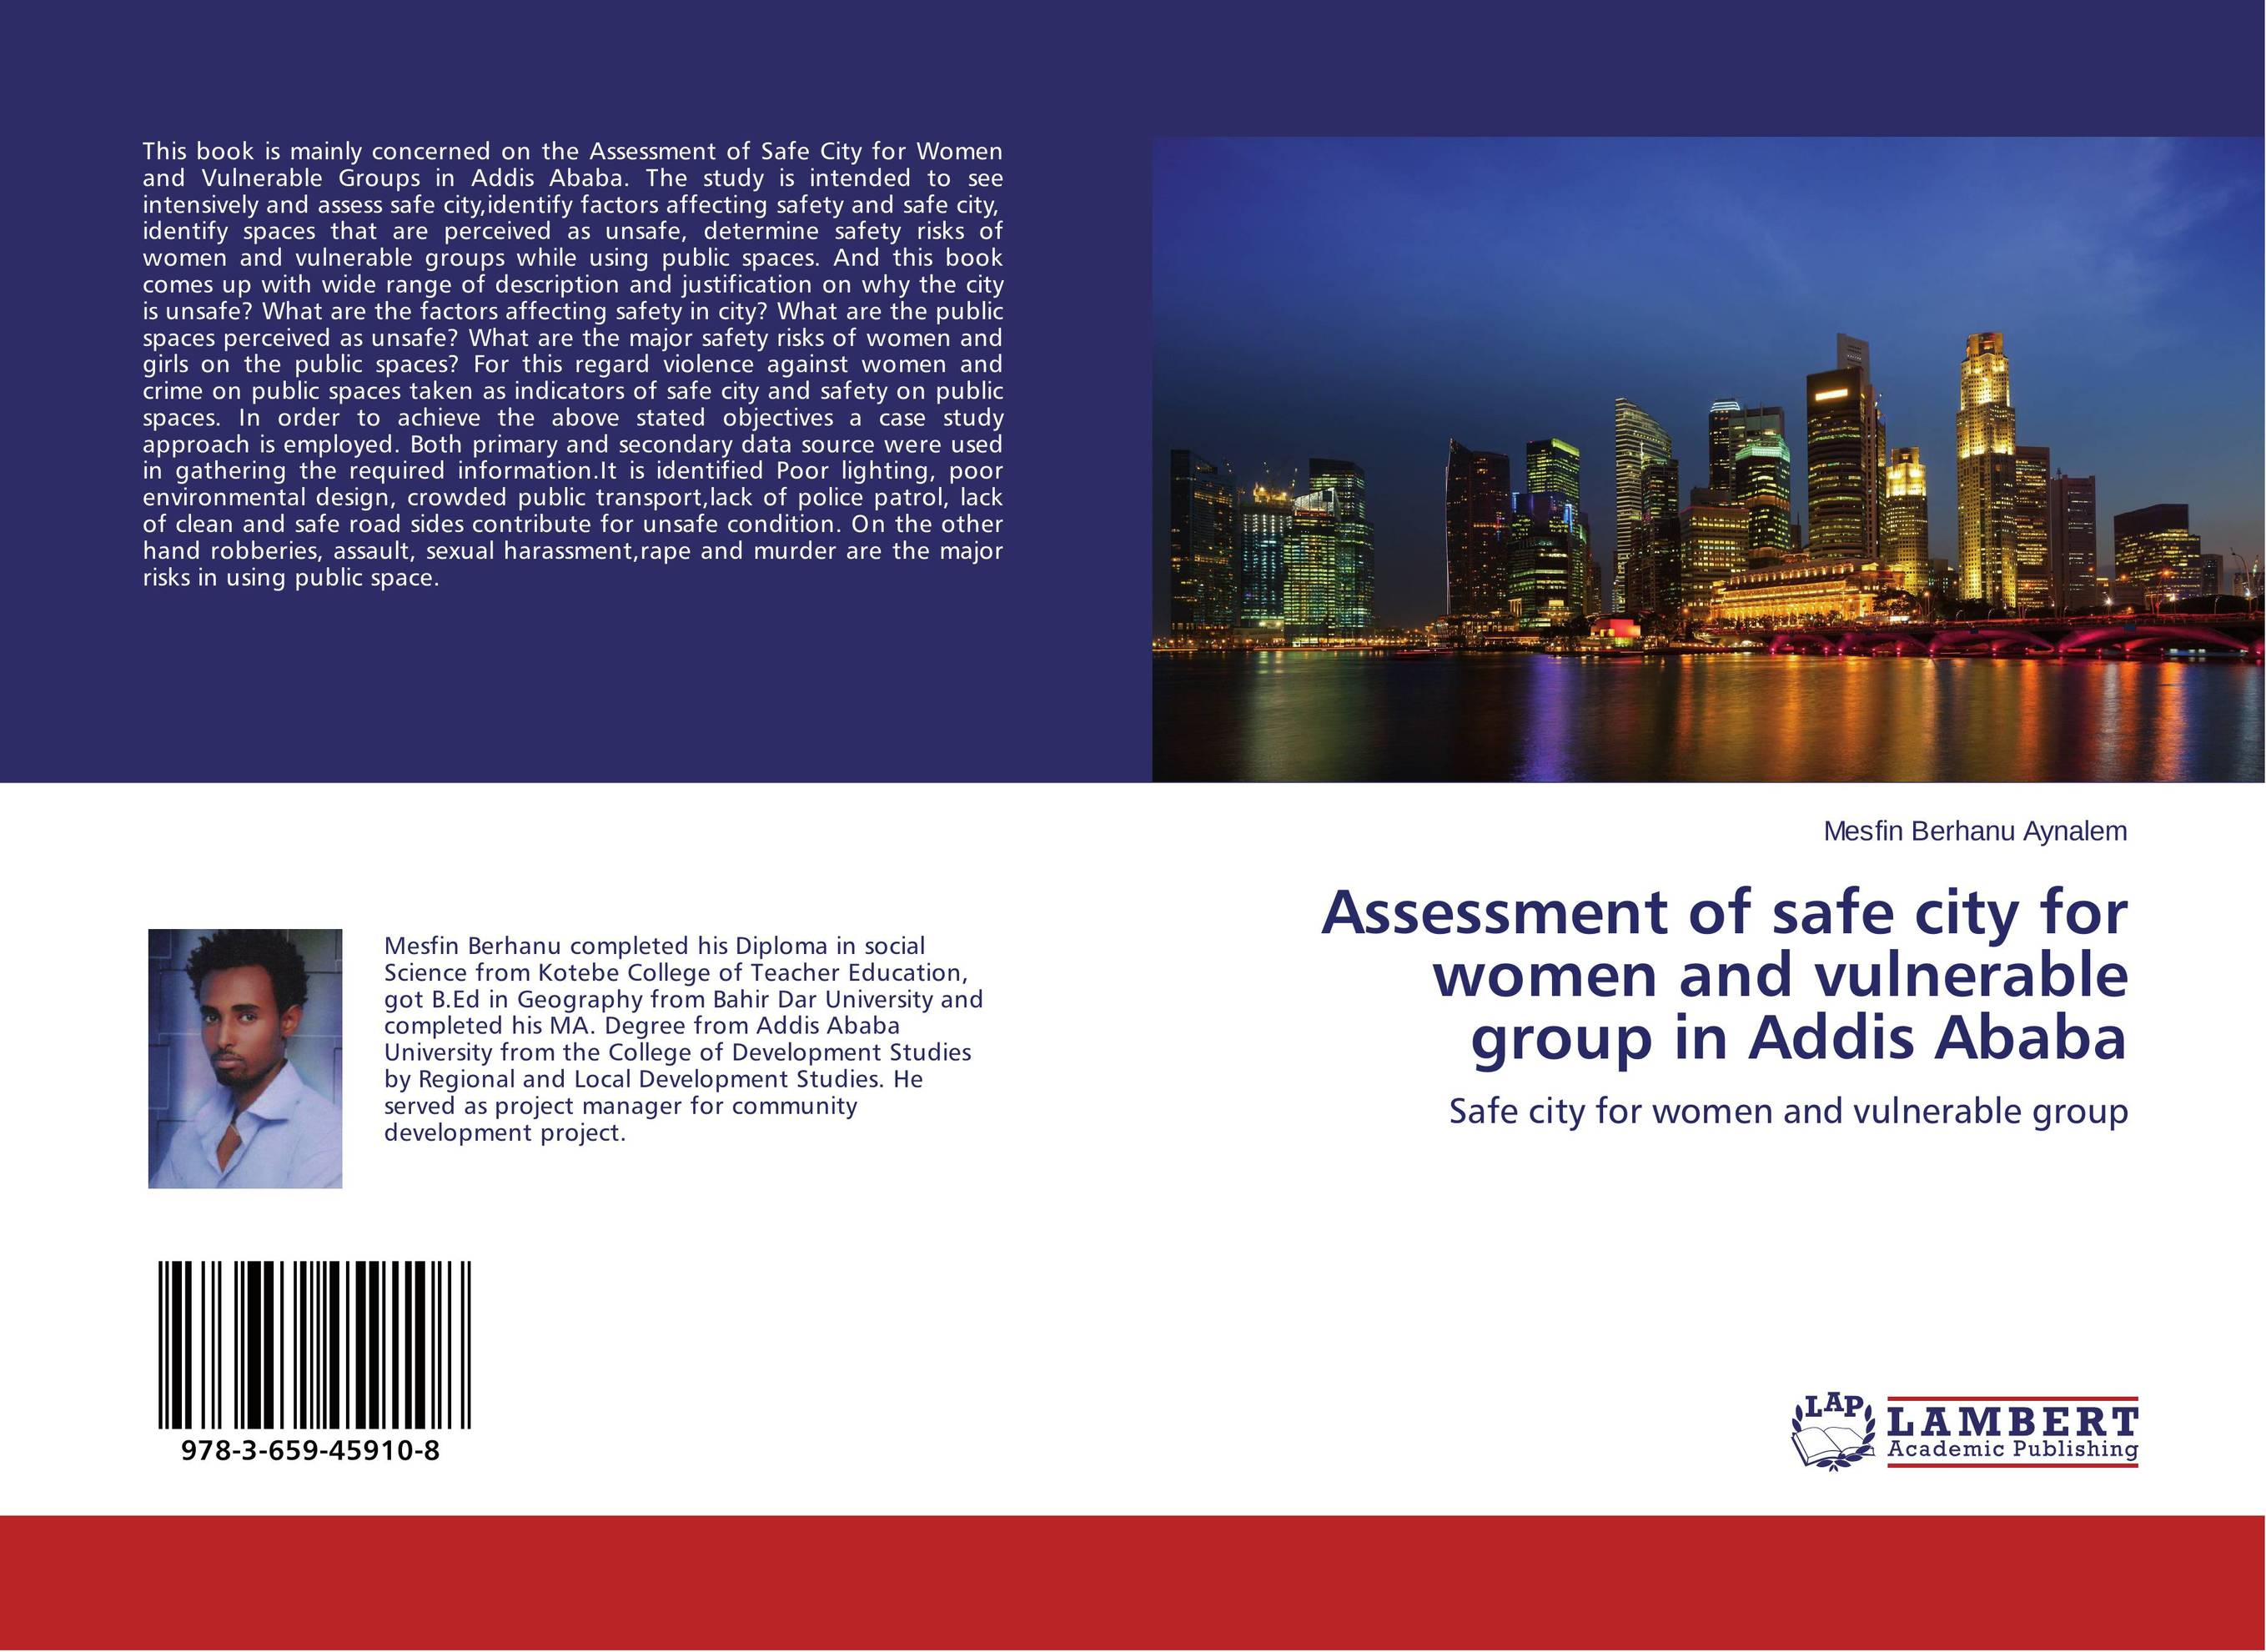 Assessment of safe city for women and vulnerable group in Addis Ababa